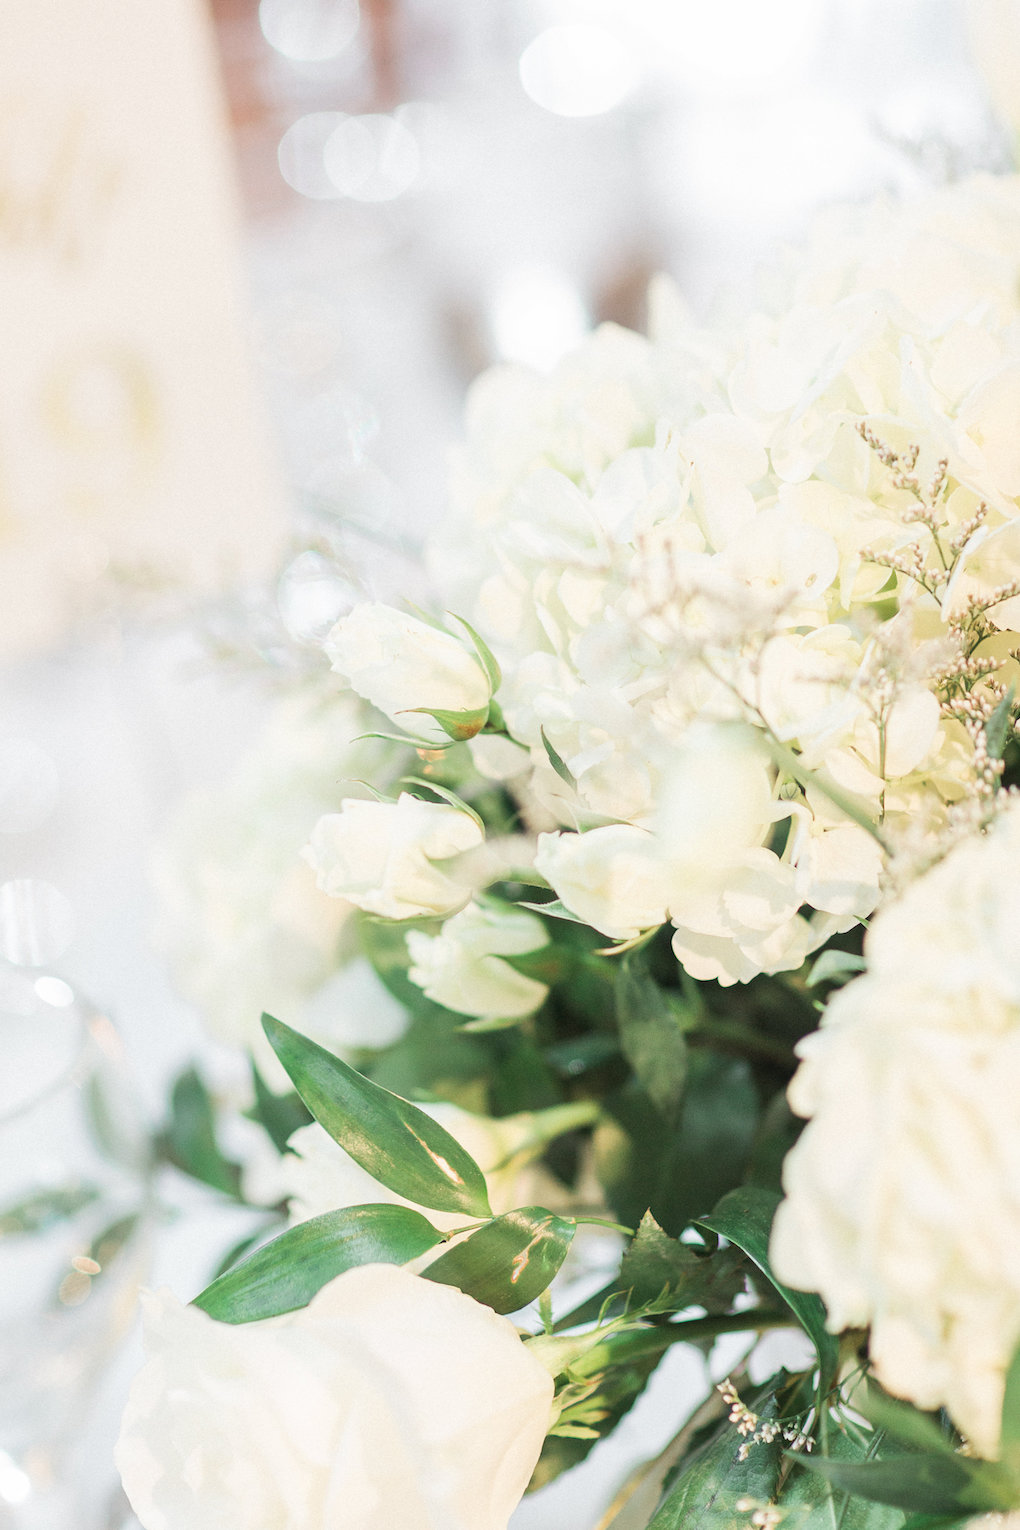 White and greenery wedding flowers for chic wedding in Buffalo, NY planned by Exhale Events. Find more timeless wedding inspiration at exhale-events.com!